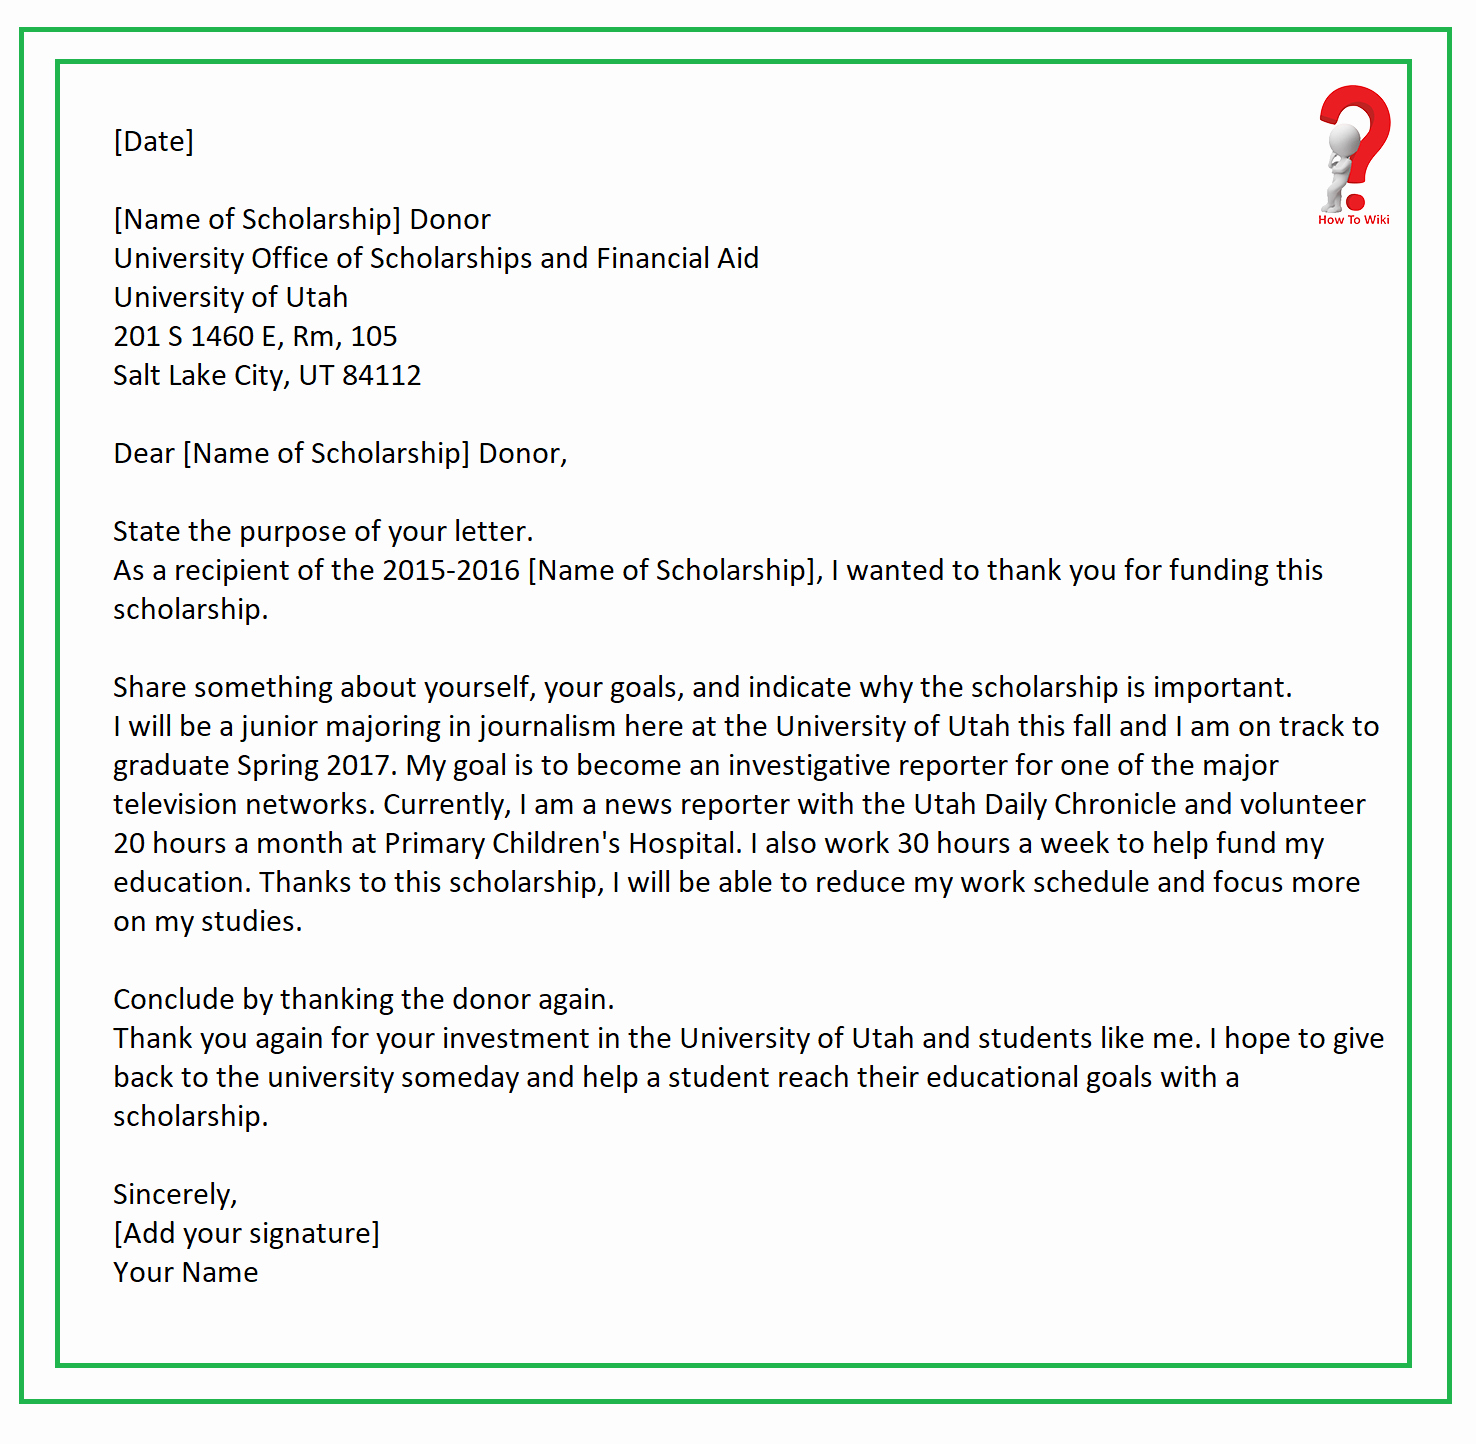 Scholarship Thank You Letter Template Best Of How to Write Thank You Letter for Scholarship